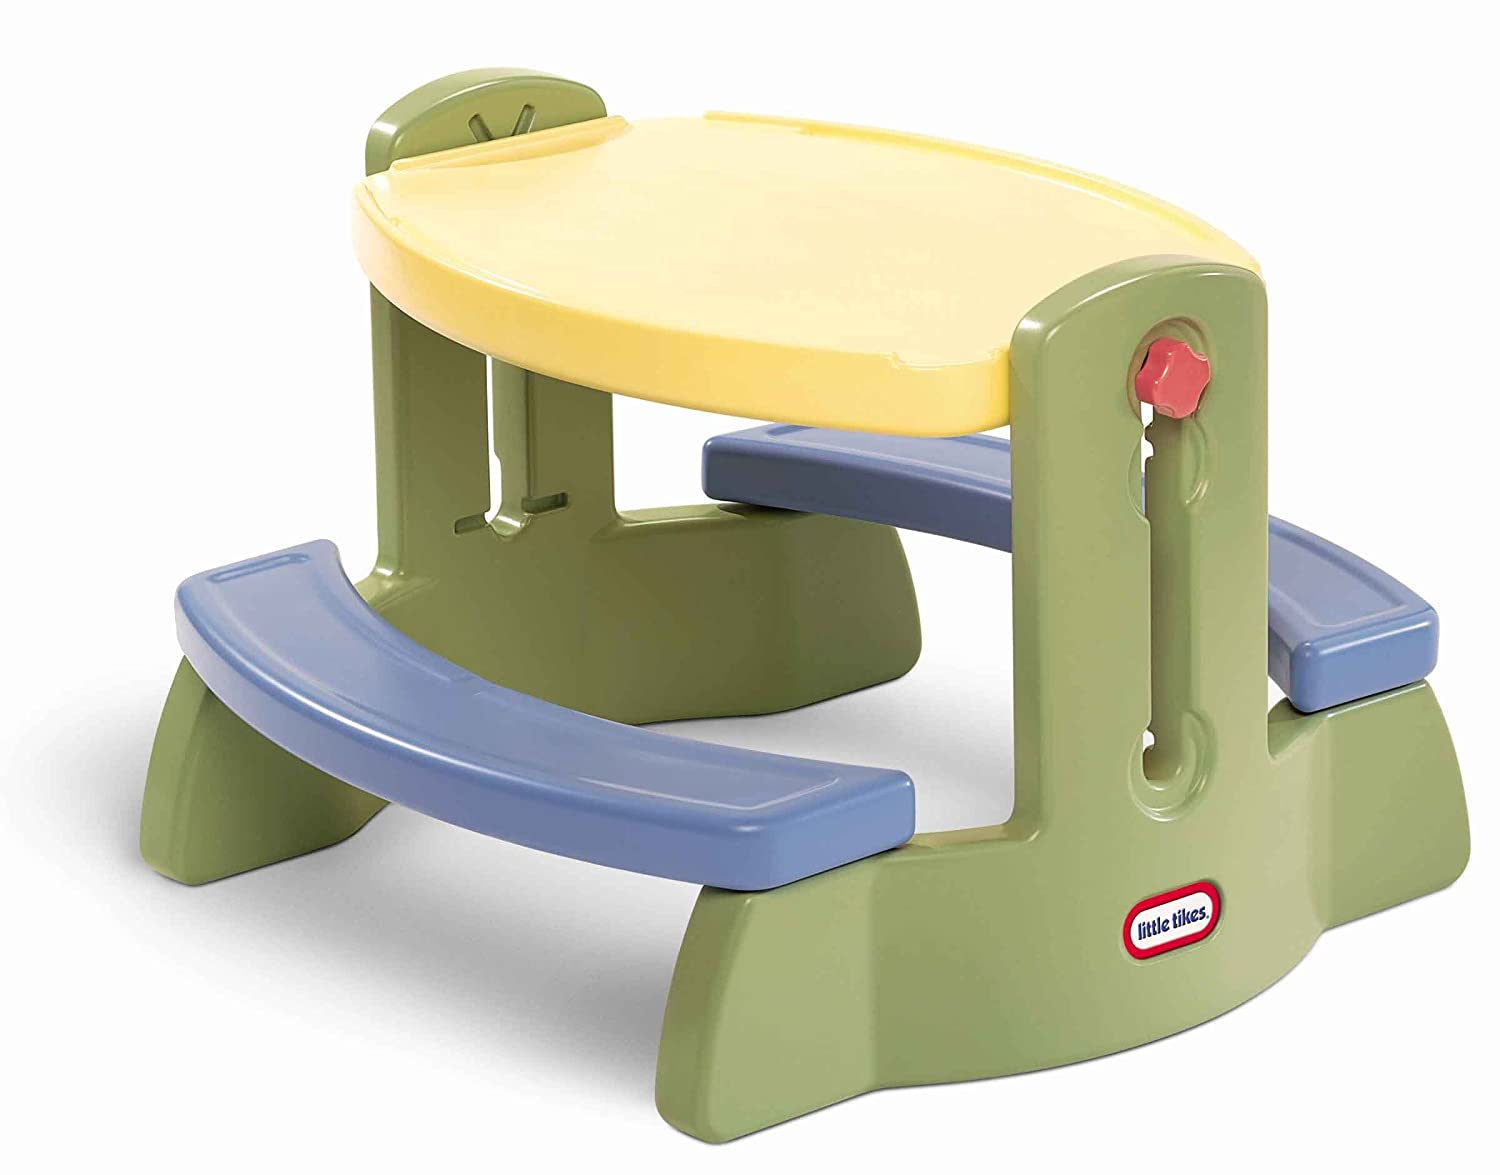 Little tikes adjustable table and chairs - Little Tikes Adjustable Table And Chairs 36